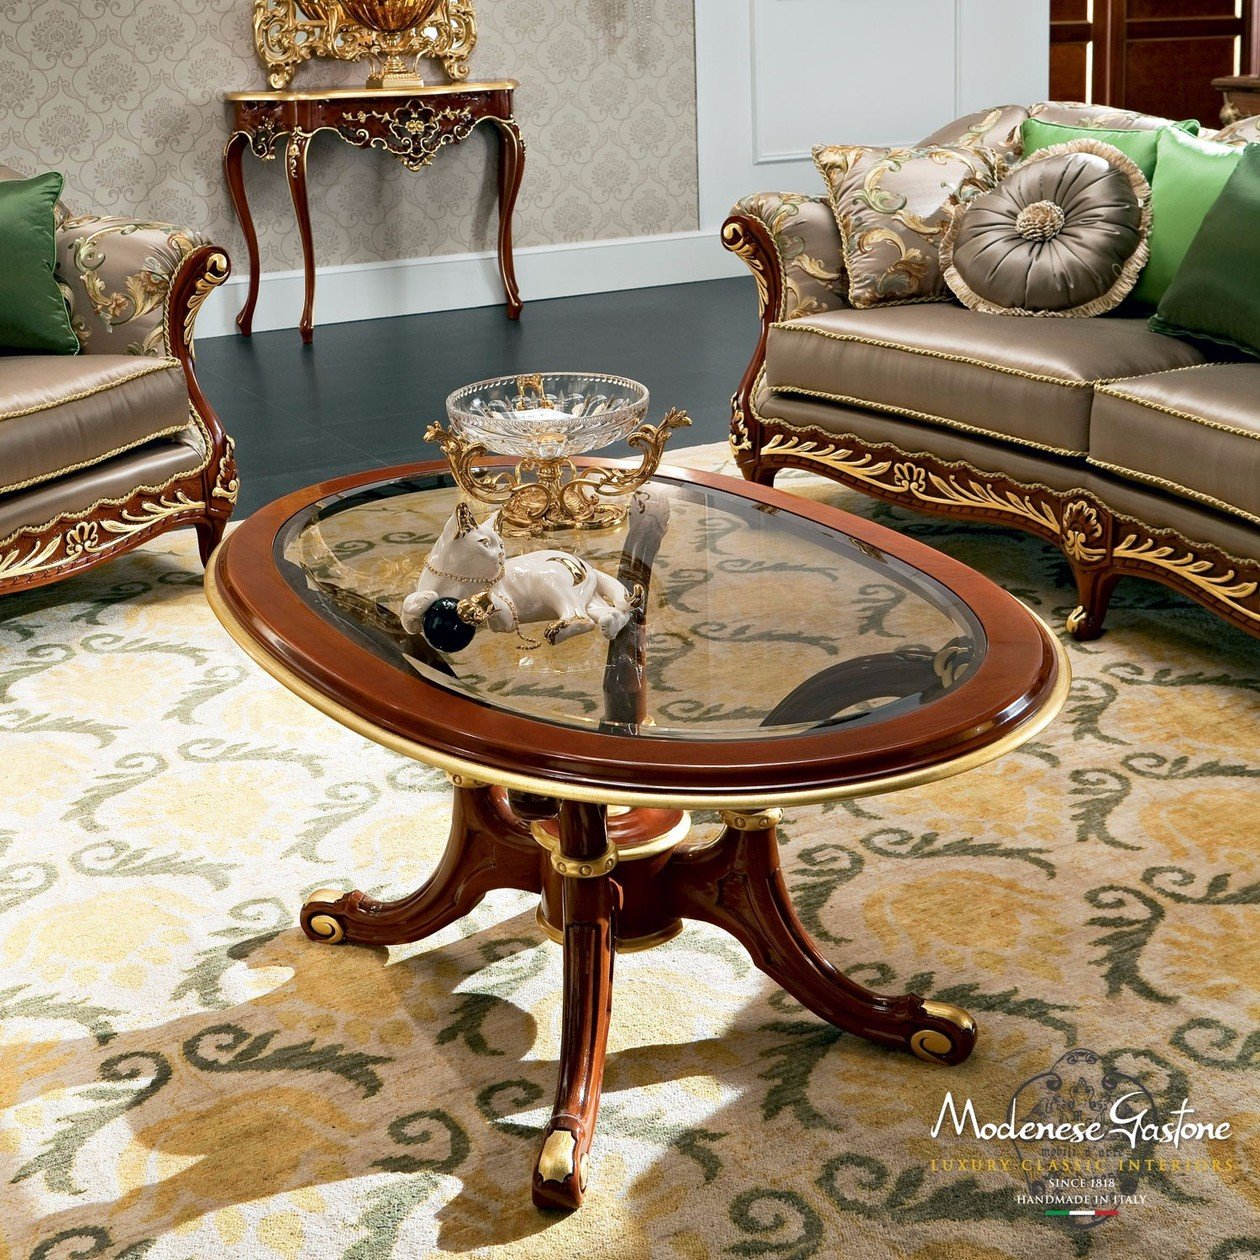 13654 coffee table by modenese gastone group for Modenese gastone